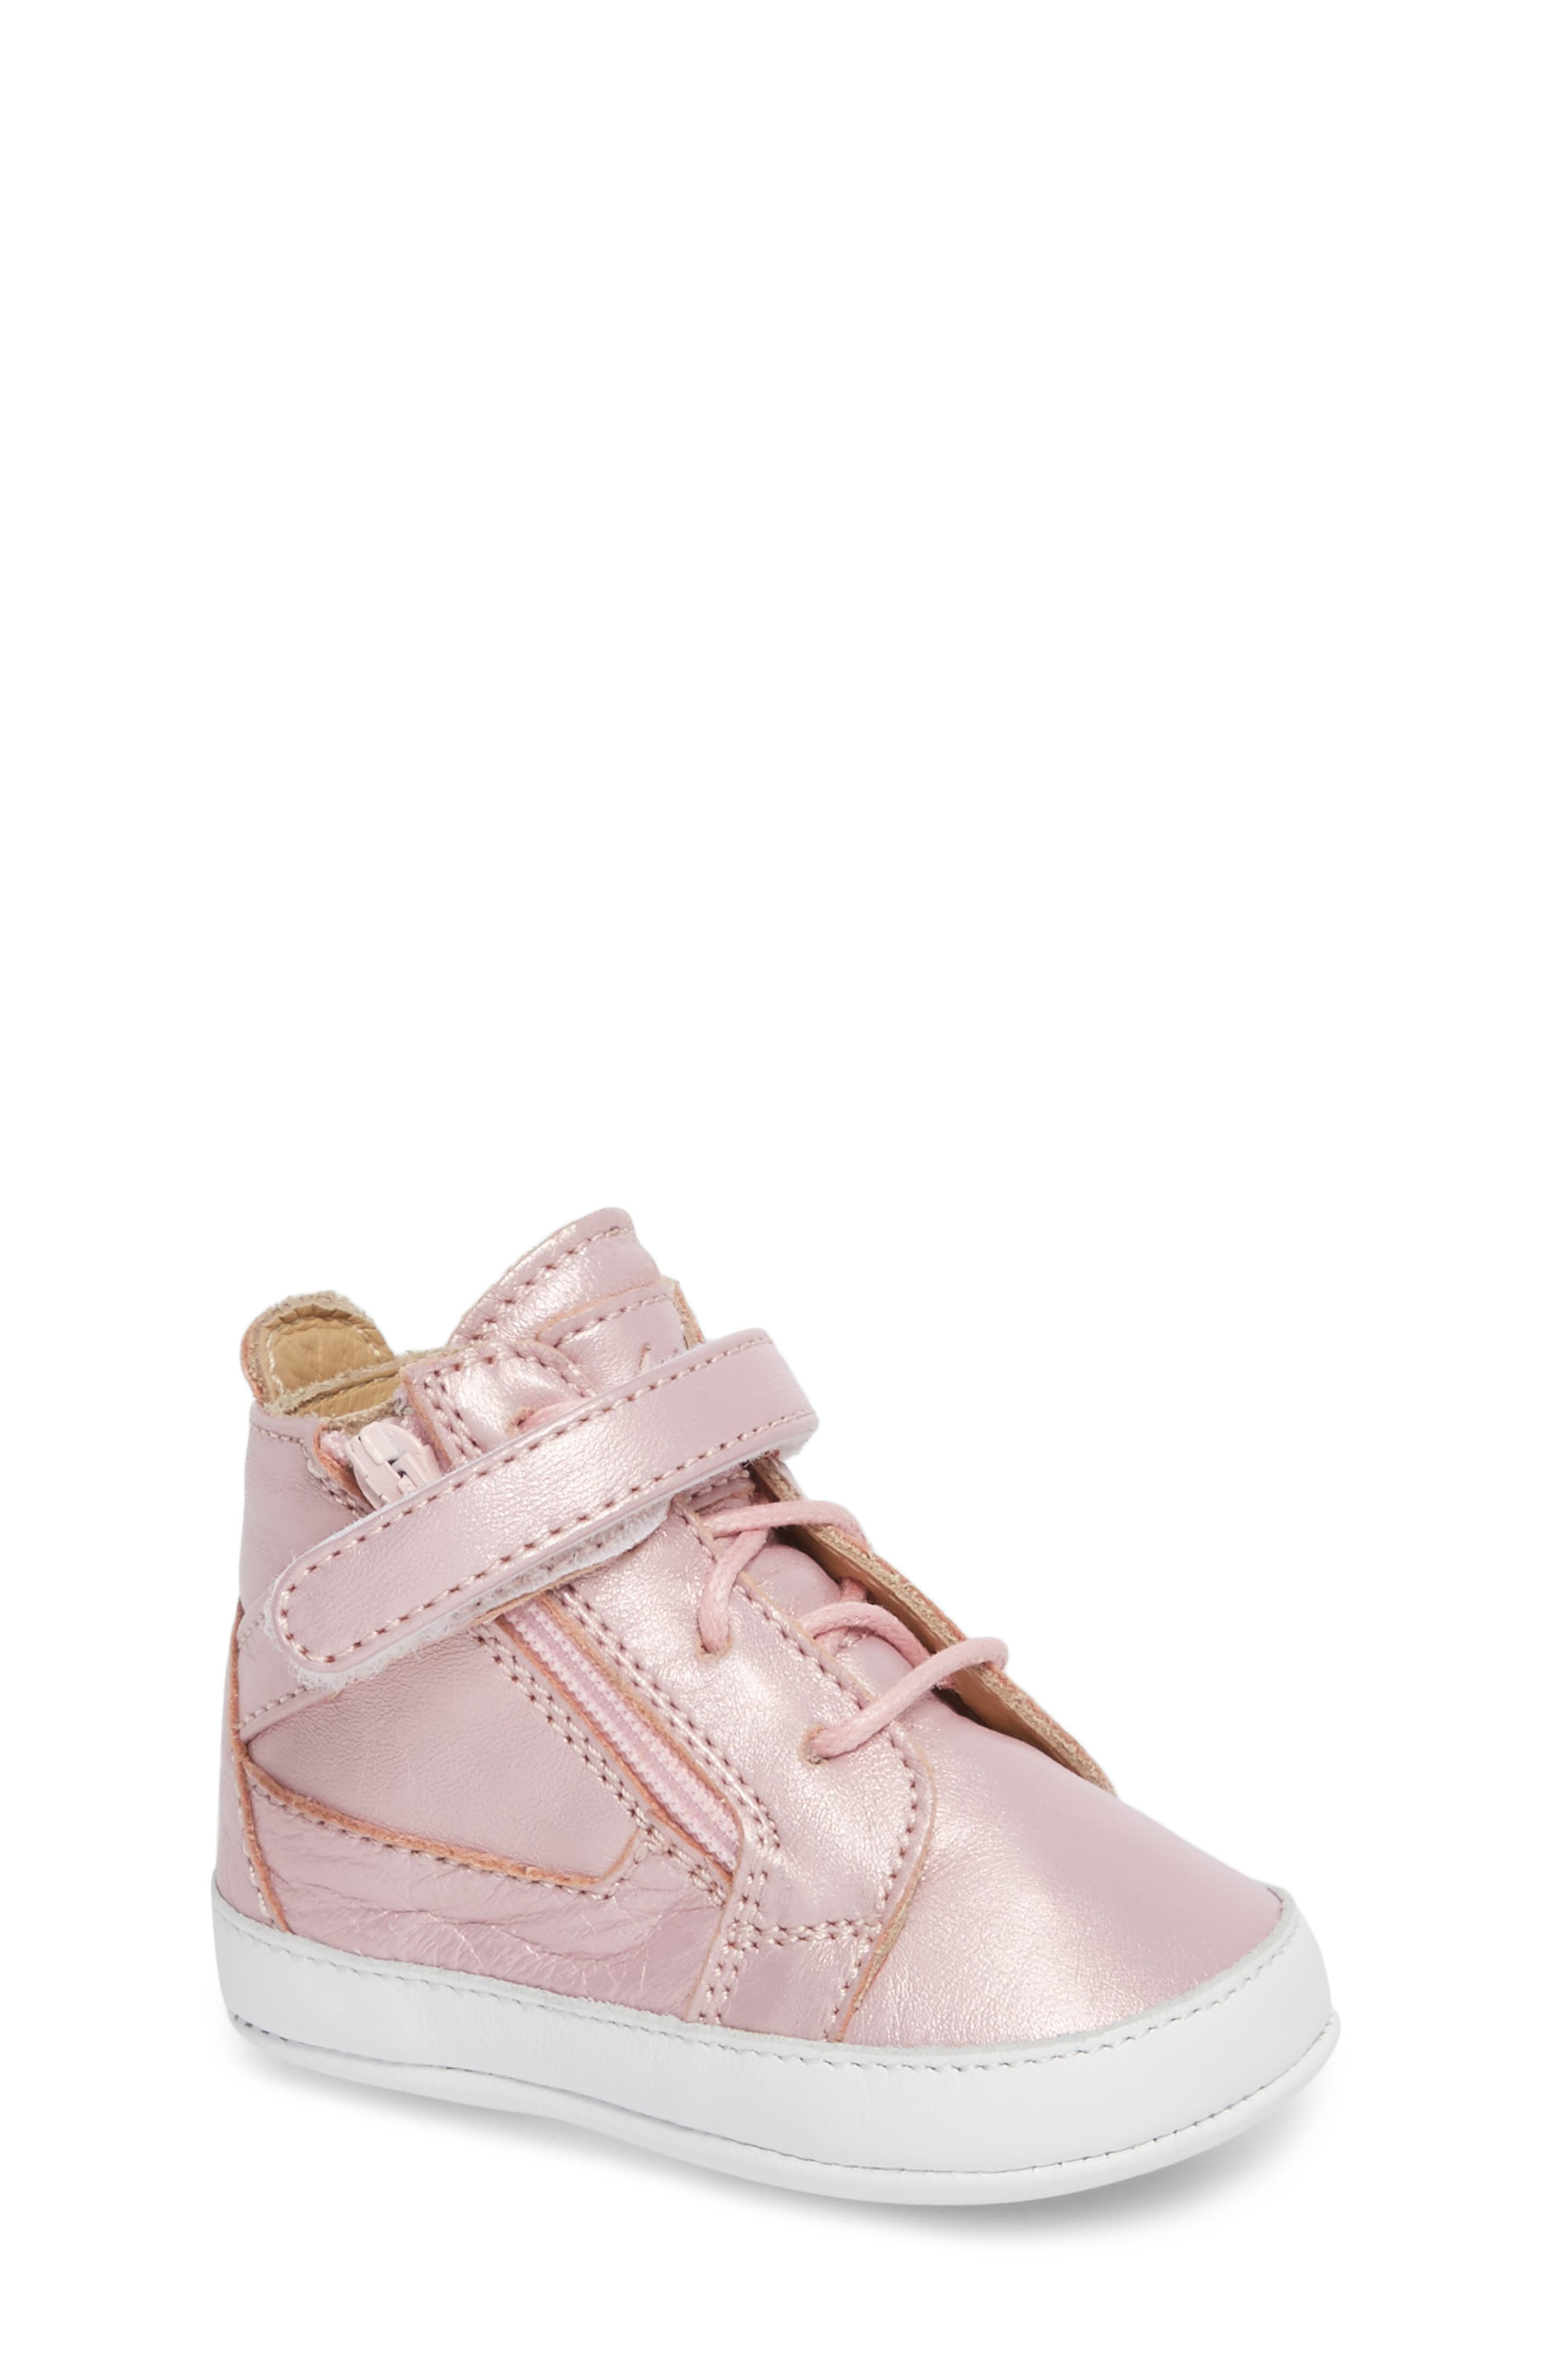 Culla London High Top Crib Sneaker,                             Main thumbnail 3, color,